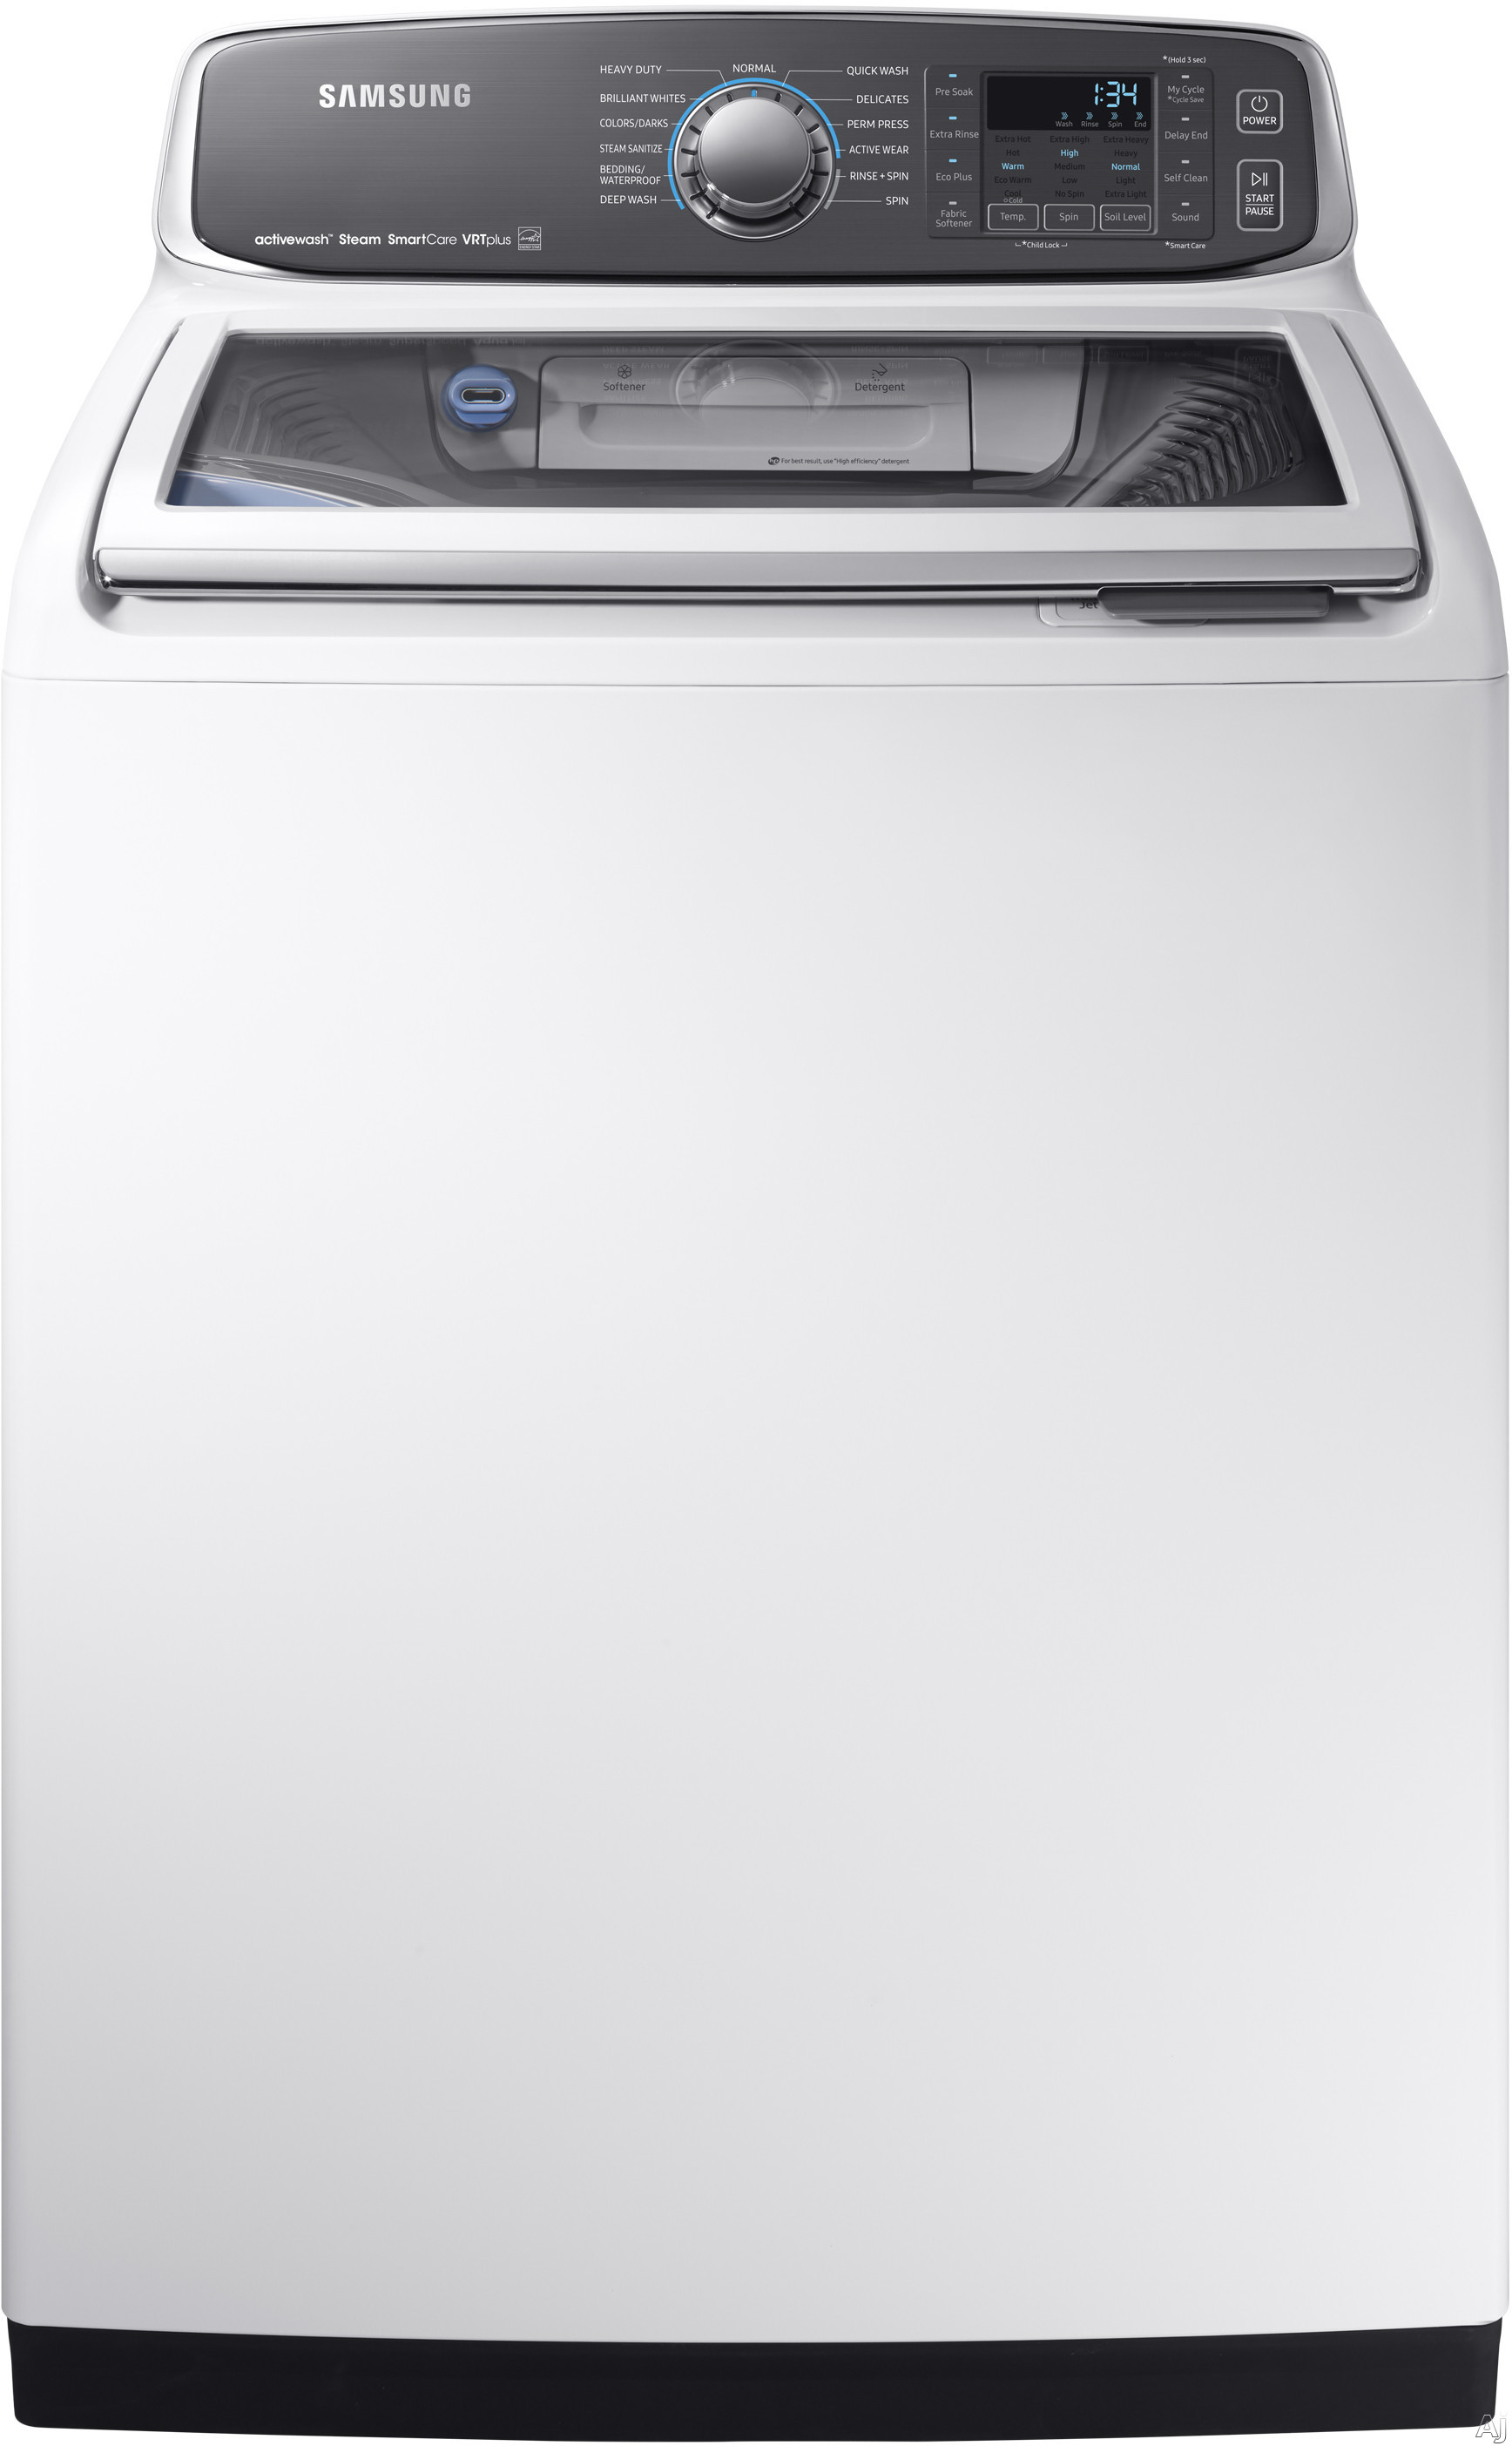 Samsung WA52M7750A 27 Inch Top Load Washer with activewash™ Sink, Steam, Self Clean, 13 Wash Cycles, 3-Tray Dispenser, Smart Care, VRT Plus™ Technology, ENERGY STAR® and 5.2 cu. ft. Capacity